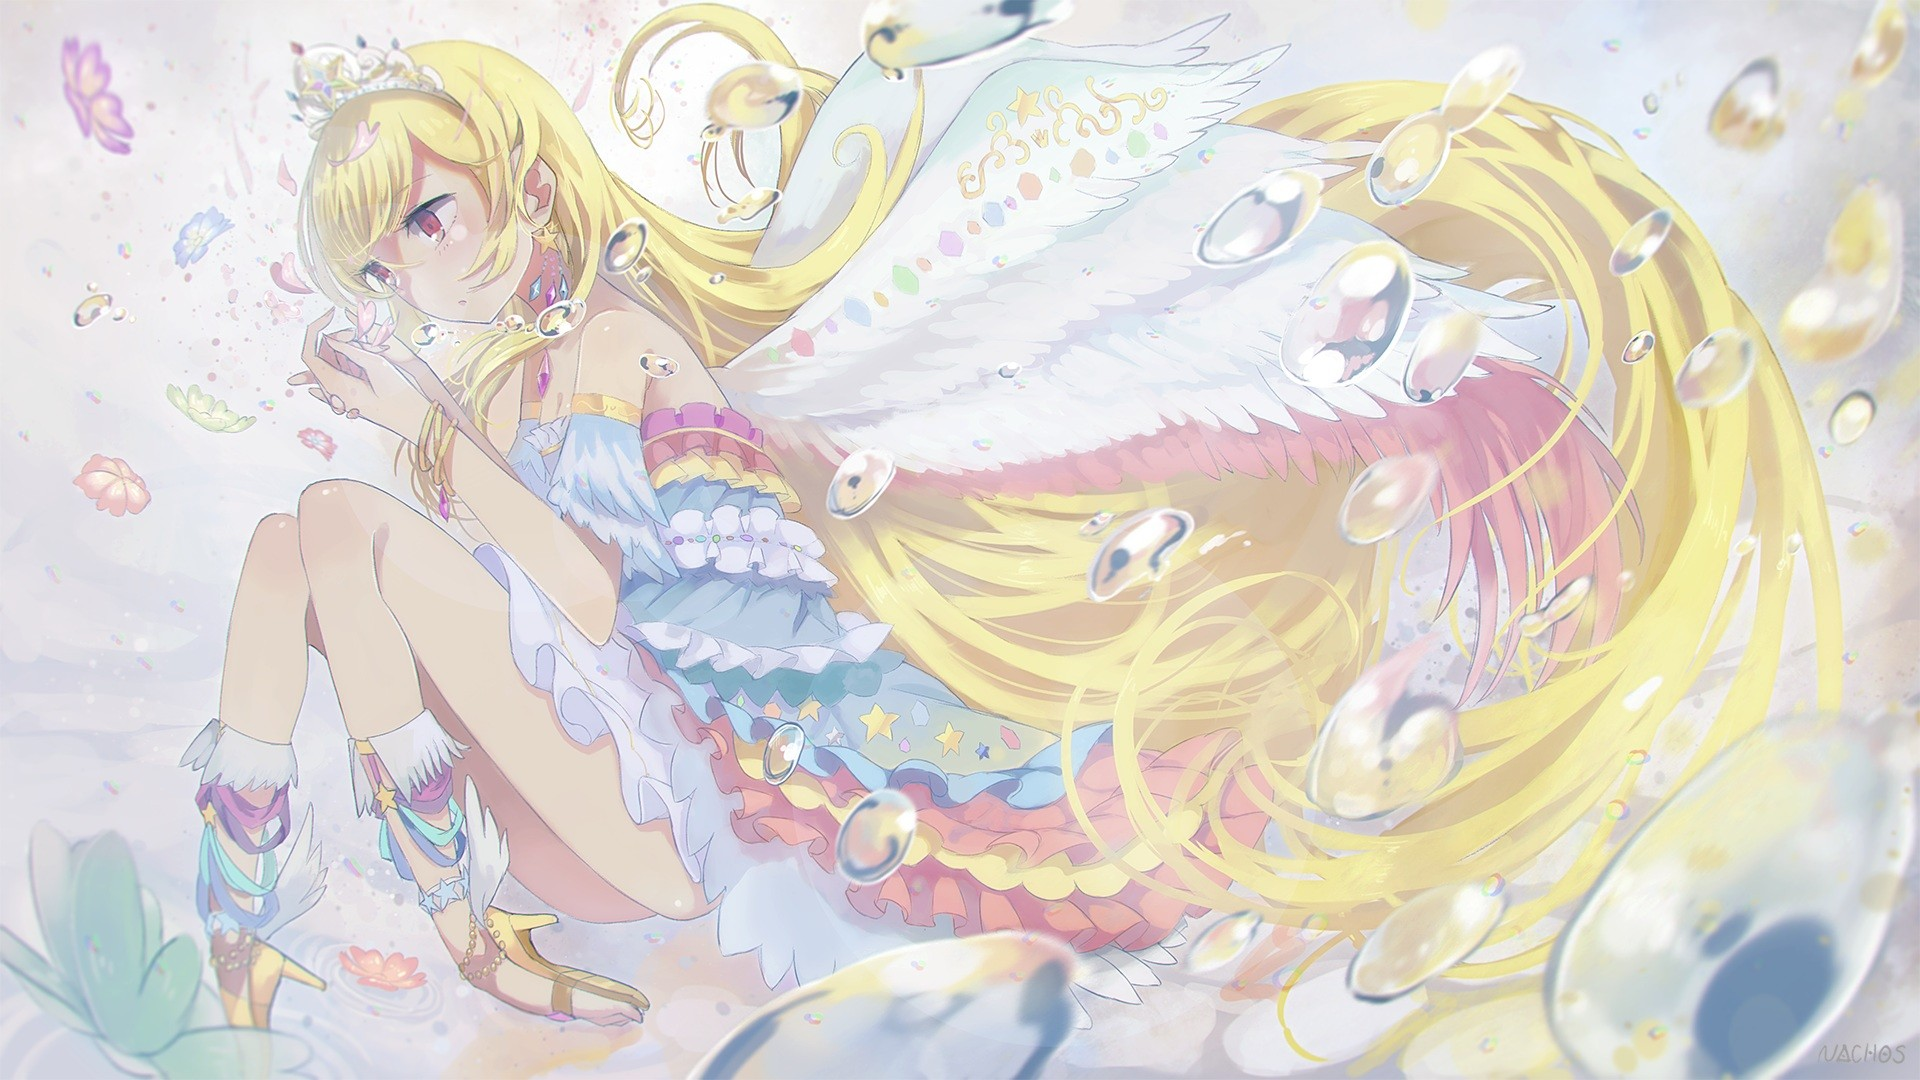 anime girls, anime, aikatsu, princesses, wings, hoshimiya ichigo